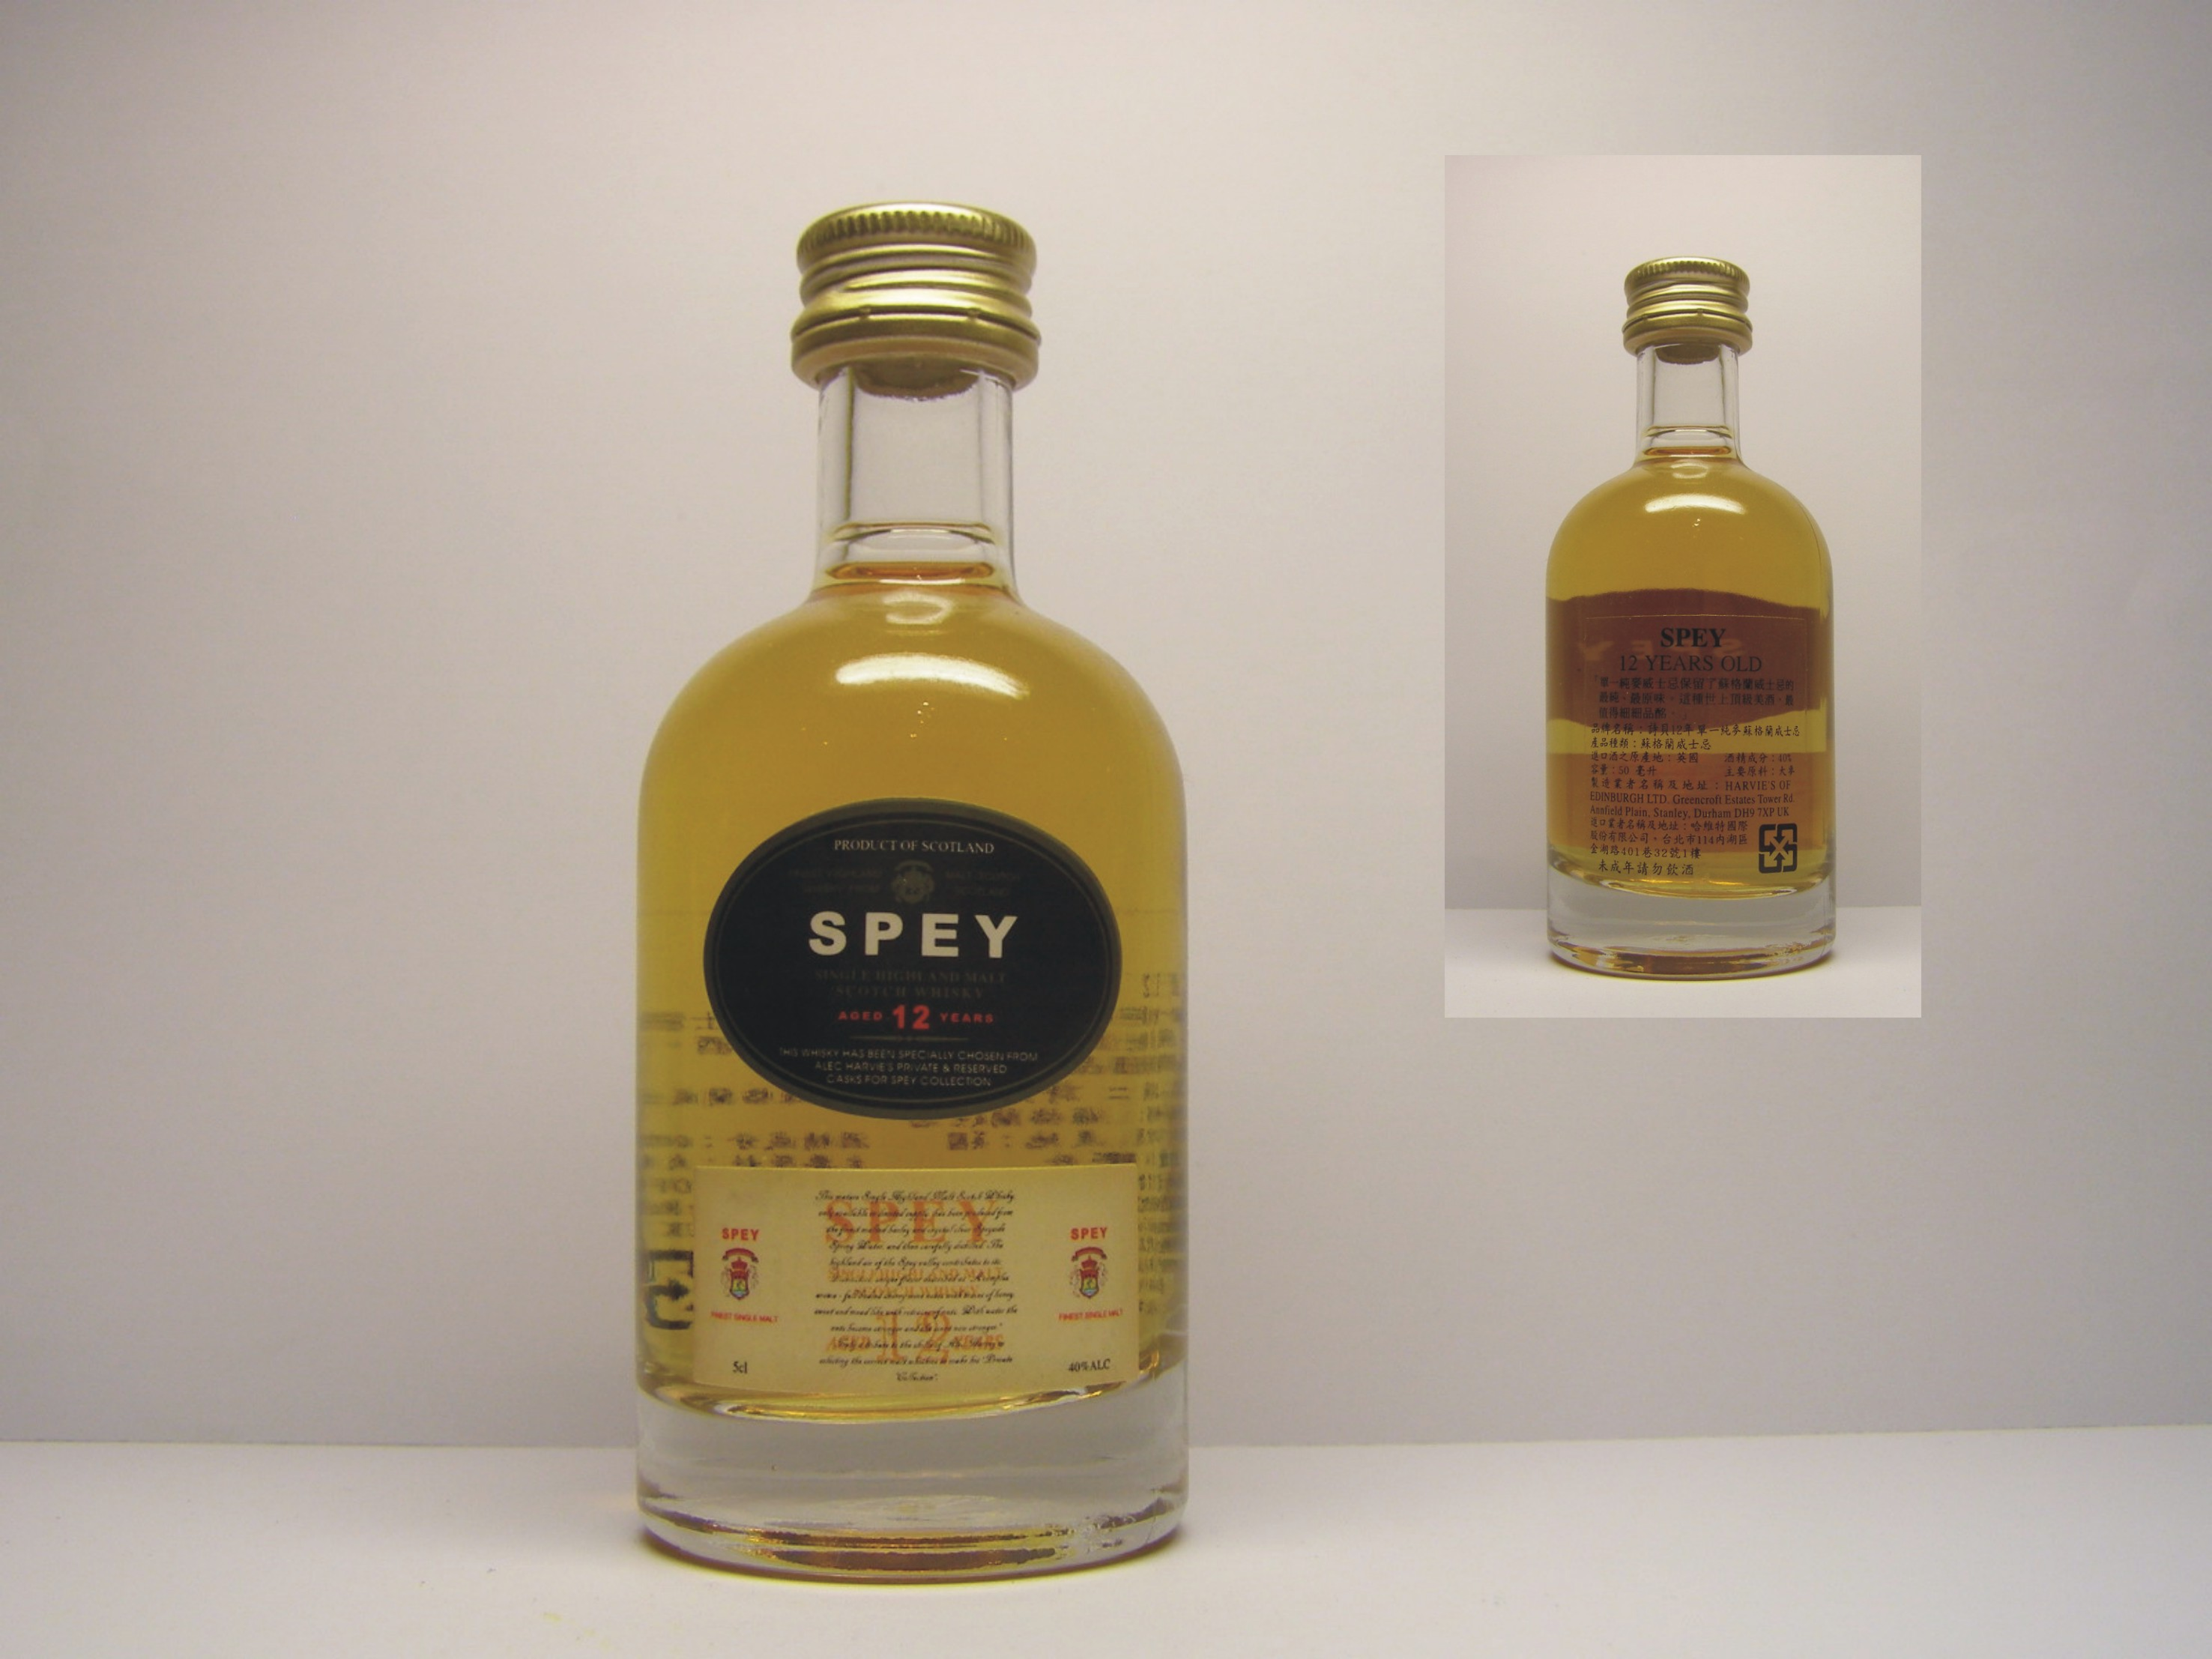 SPEY 12yo Single Highland Malt Scotch Whisky